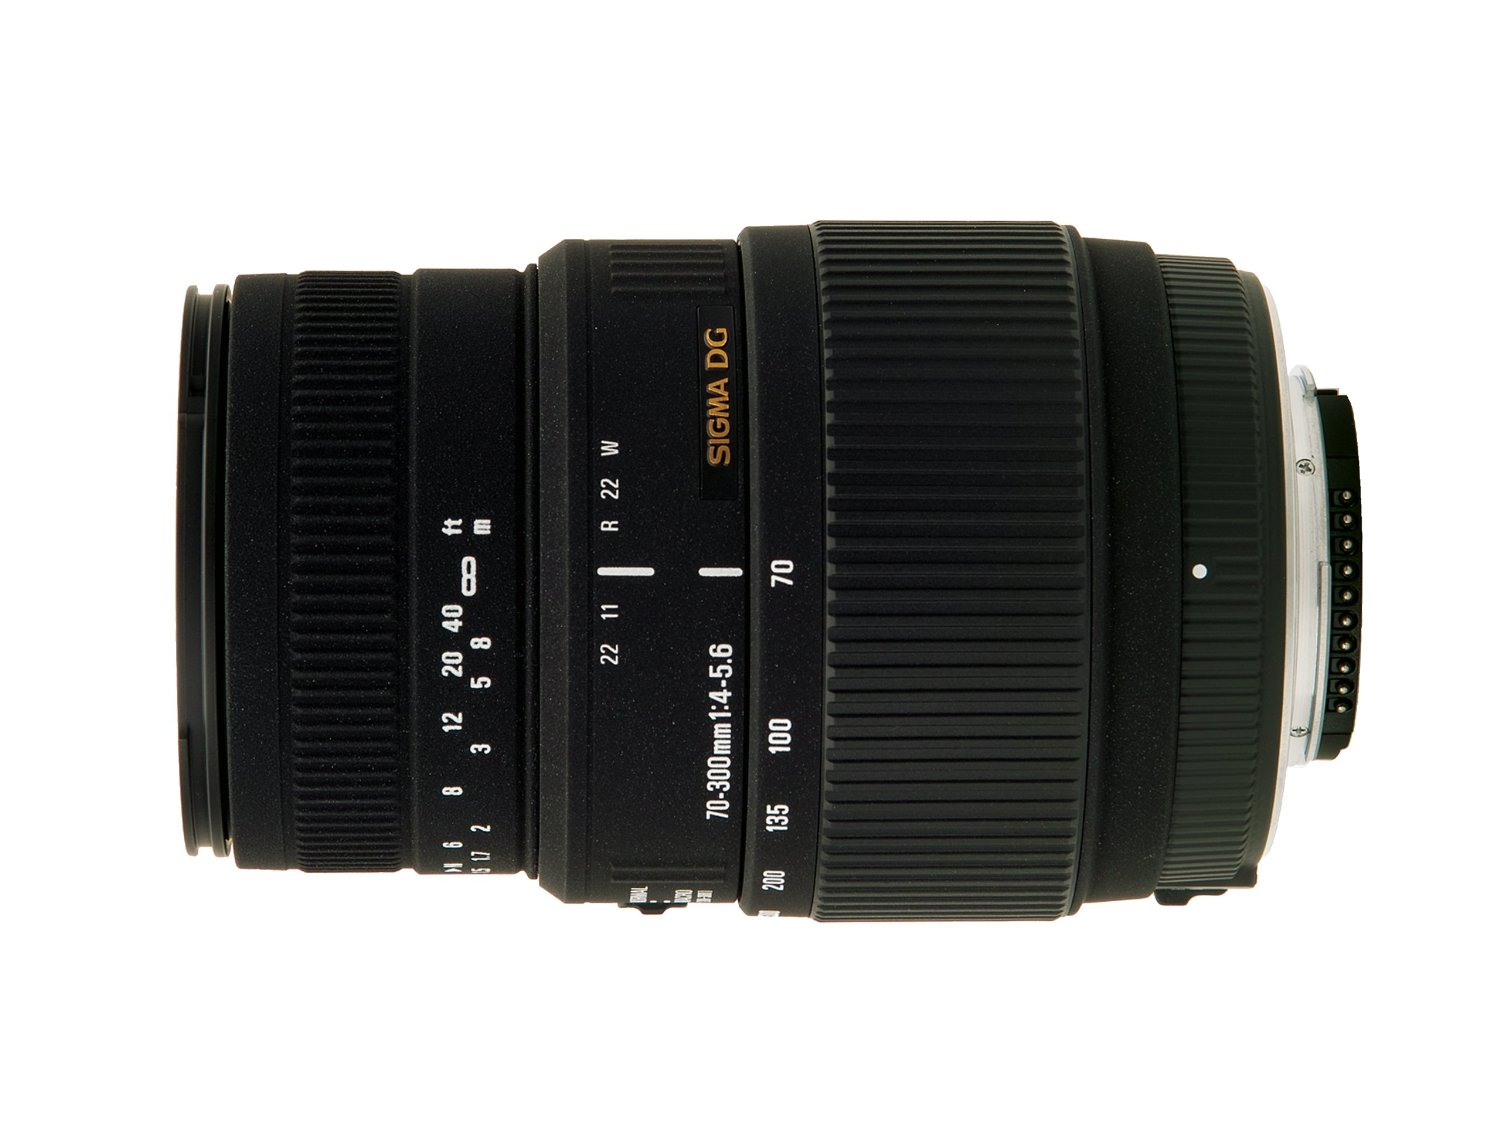 Amazon.com : Sigma 70-300mm f/4-5.6 SLD DG Macro Lens with built in motor for Nikon Digital SLR Cameras : Camera Lenses